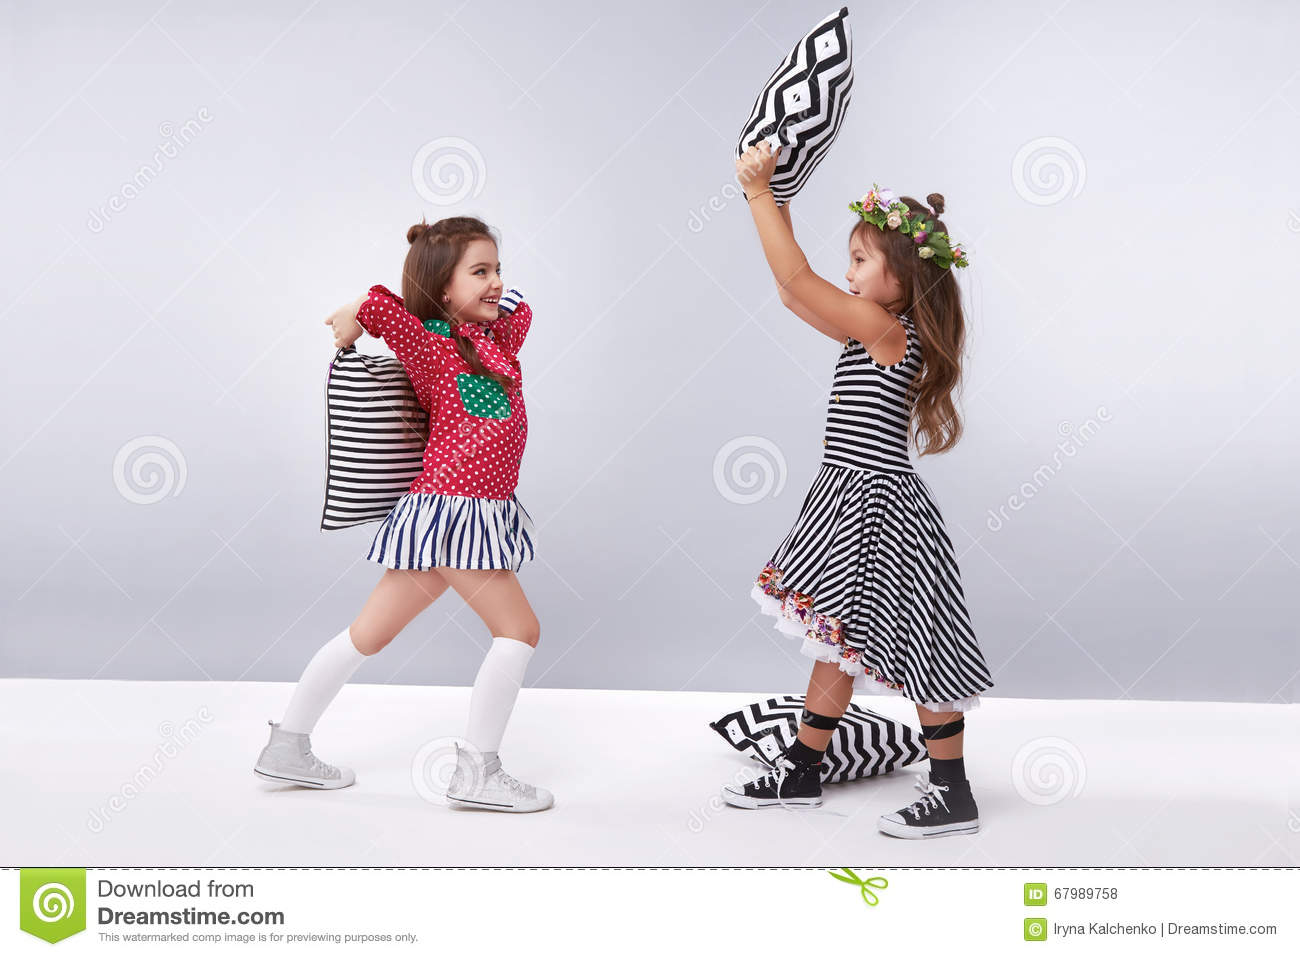 Dress girl clothing small collection cute stock photo image 67989758 Girl fashion style london